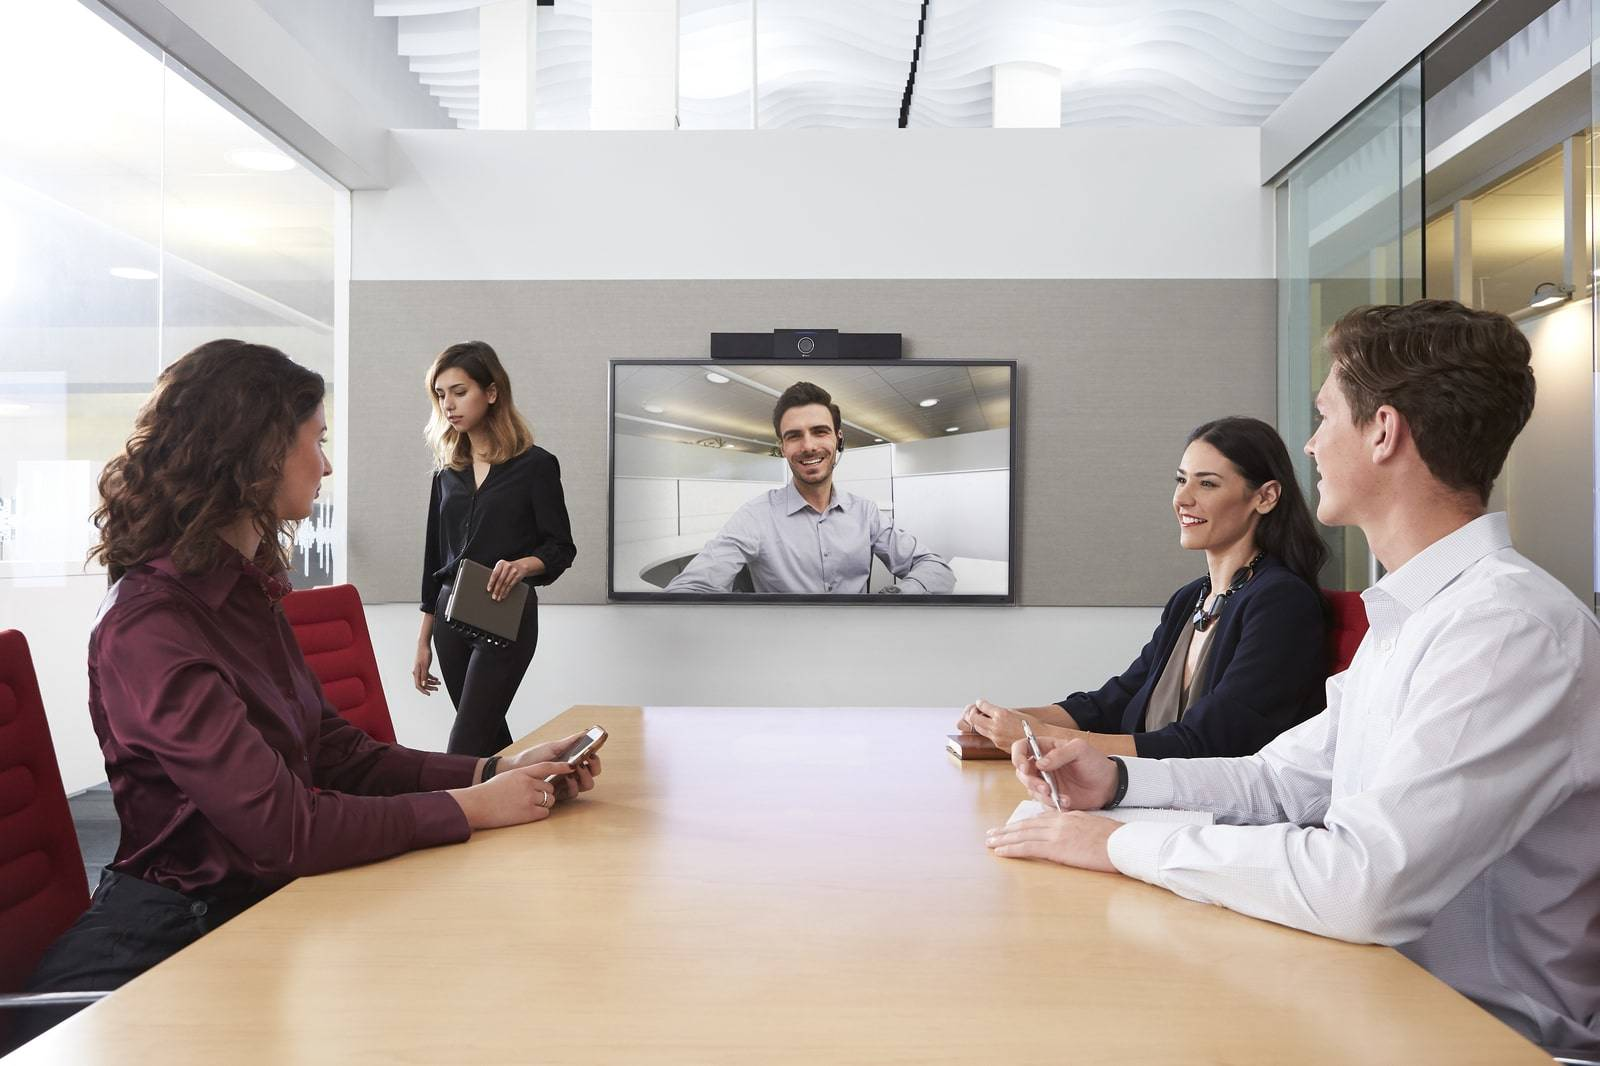 The Polycom Studio is the Ultimate Web Conferencing Solution for Huddle Rooms